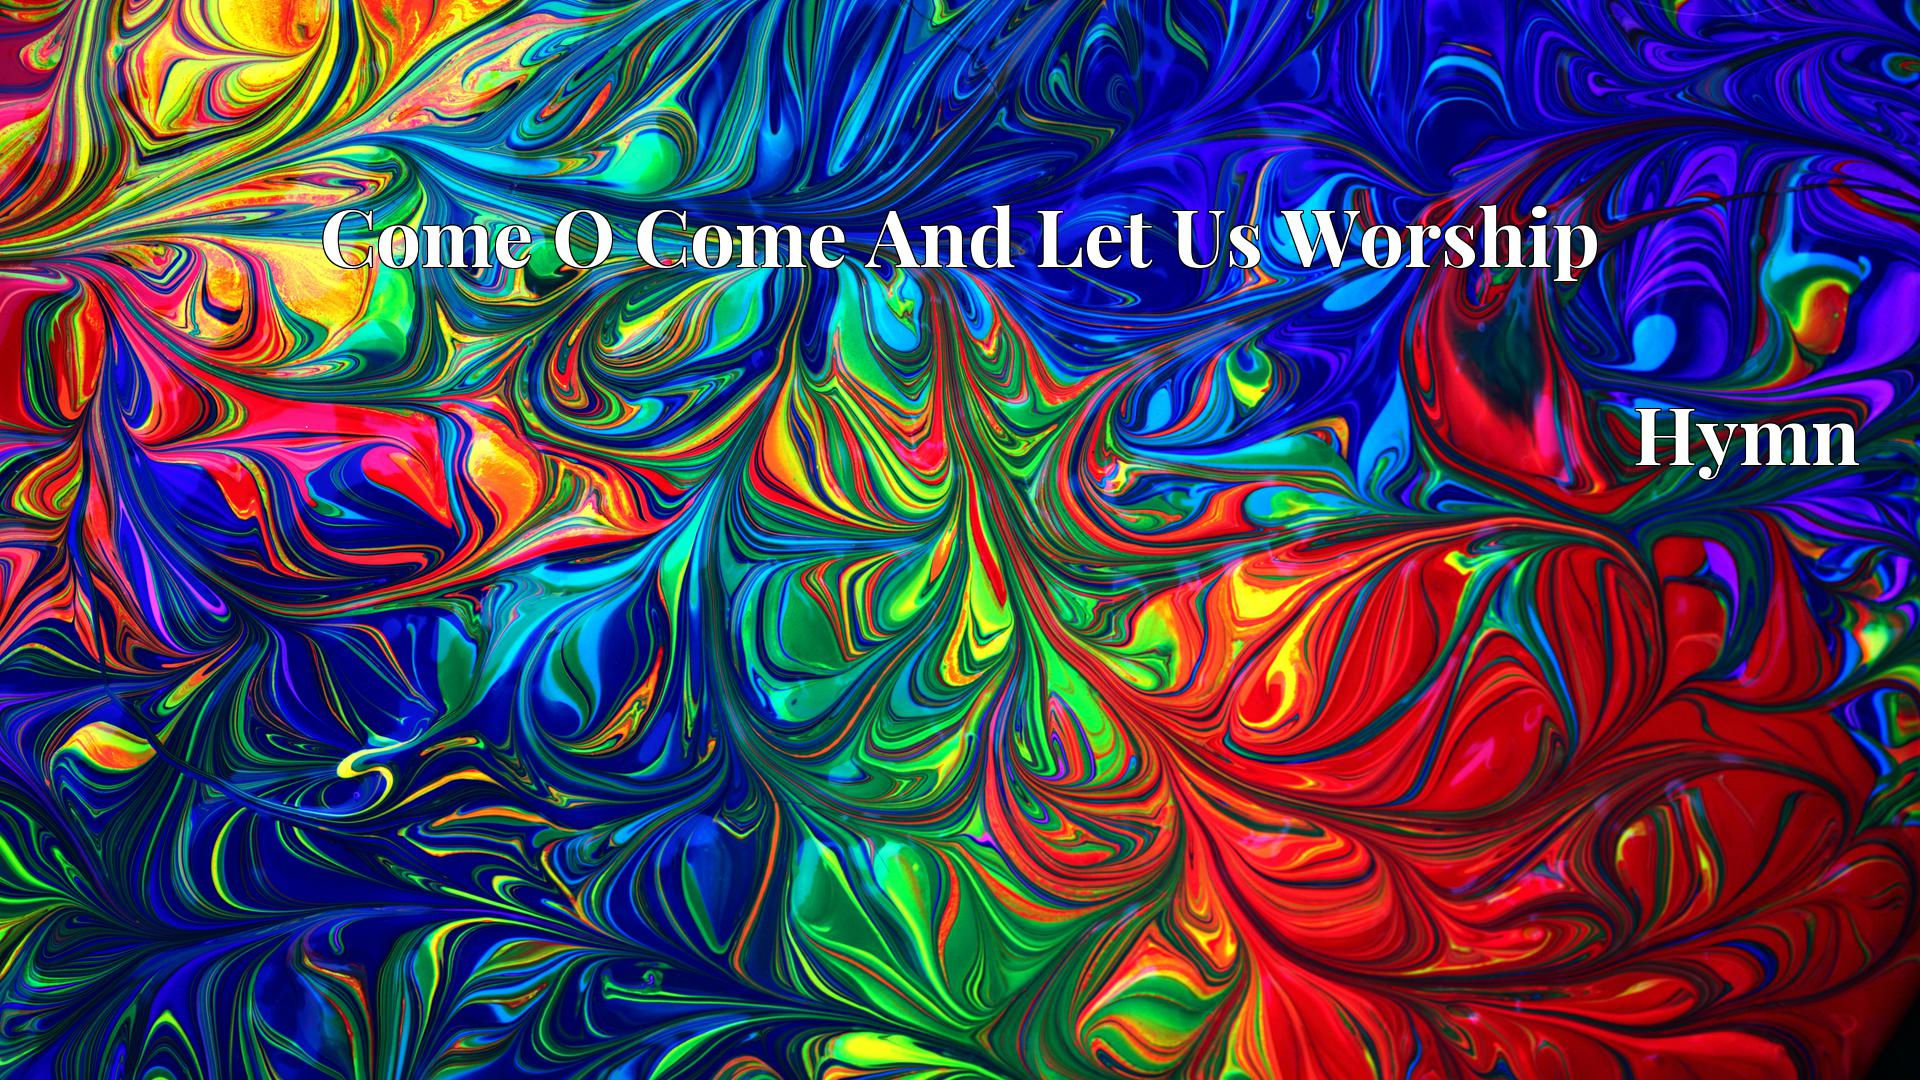 Come O Come And Let Us Worship - Hymn